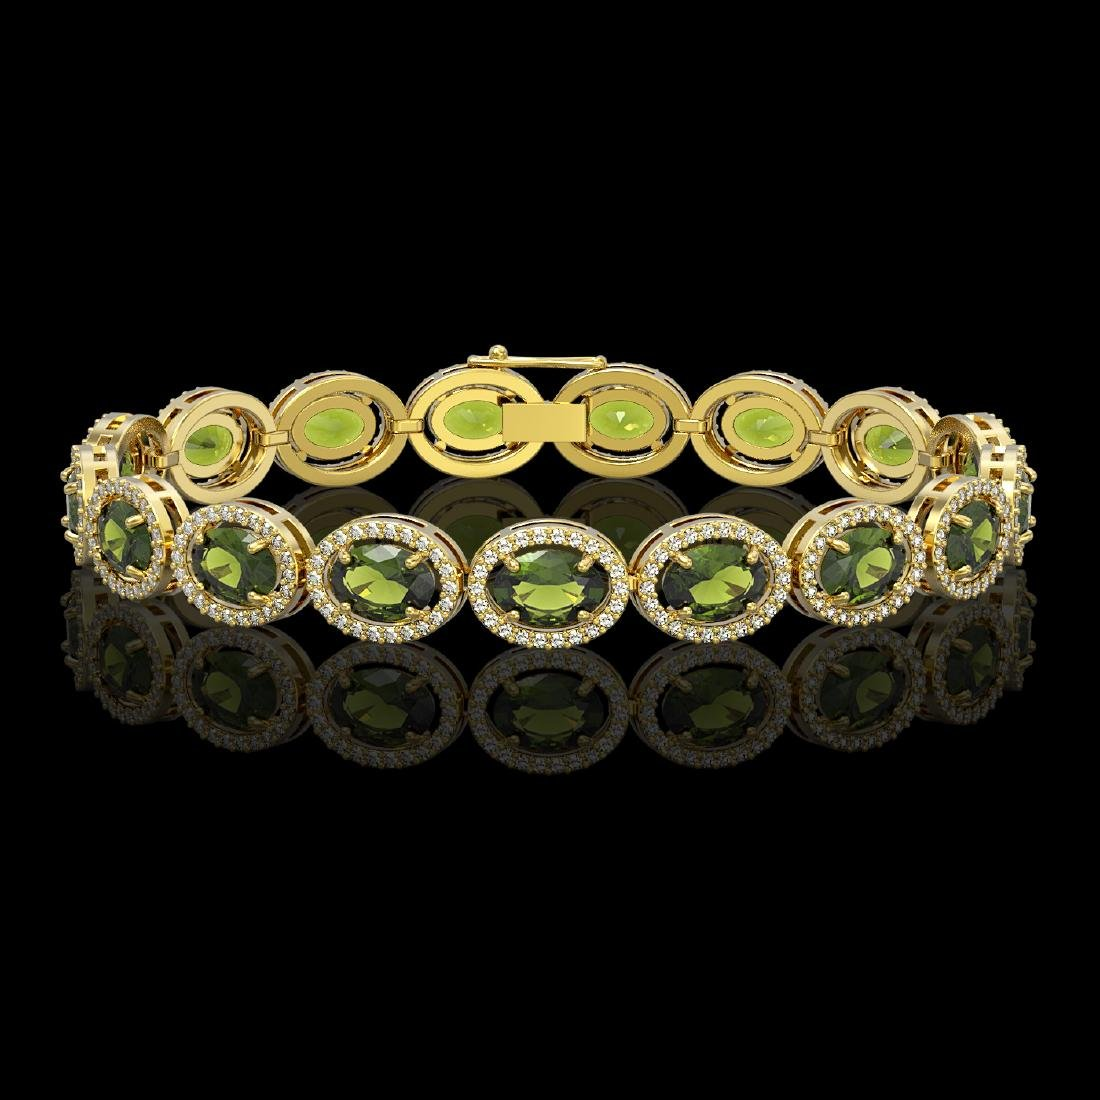 21.71 CTW Tourmaline & Diamond Halo Bracelet 10K Yellow